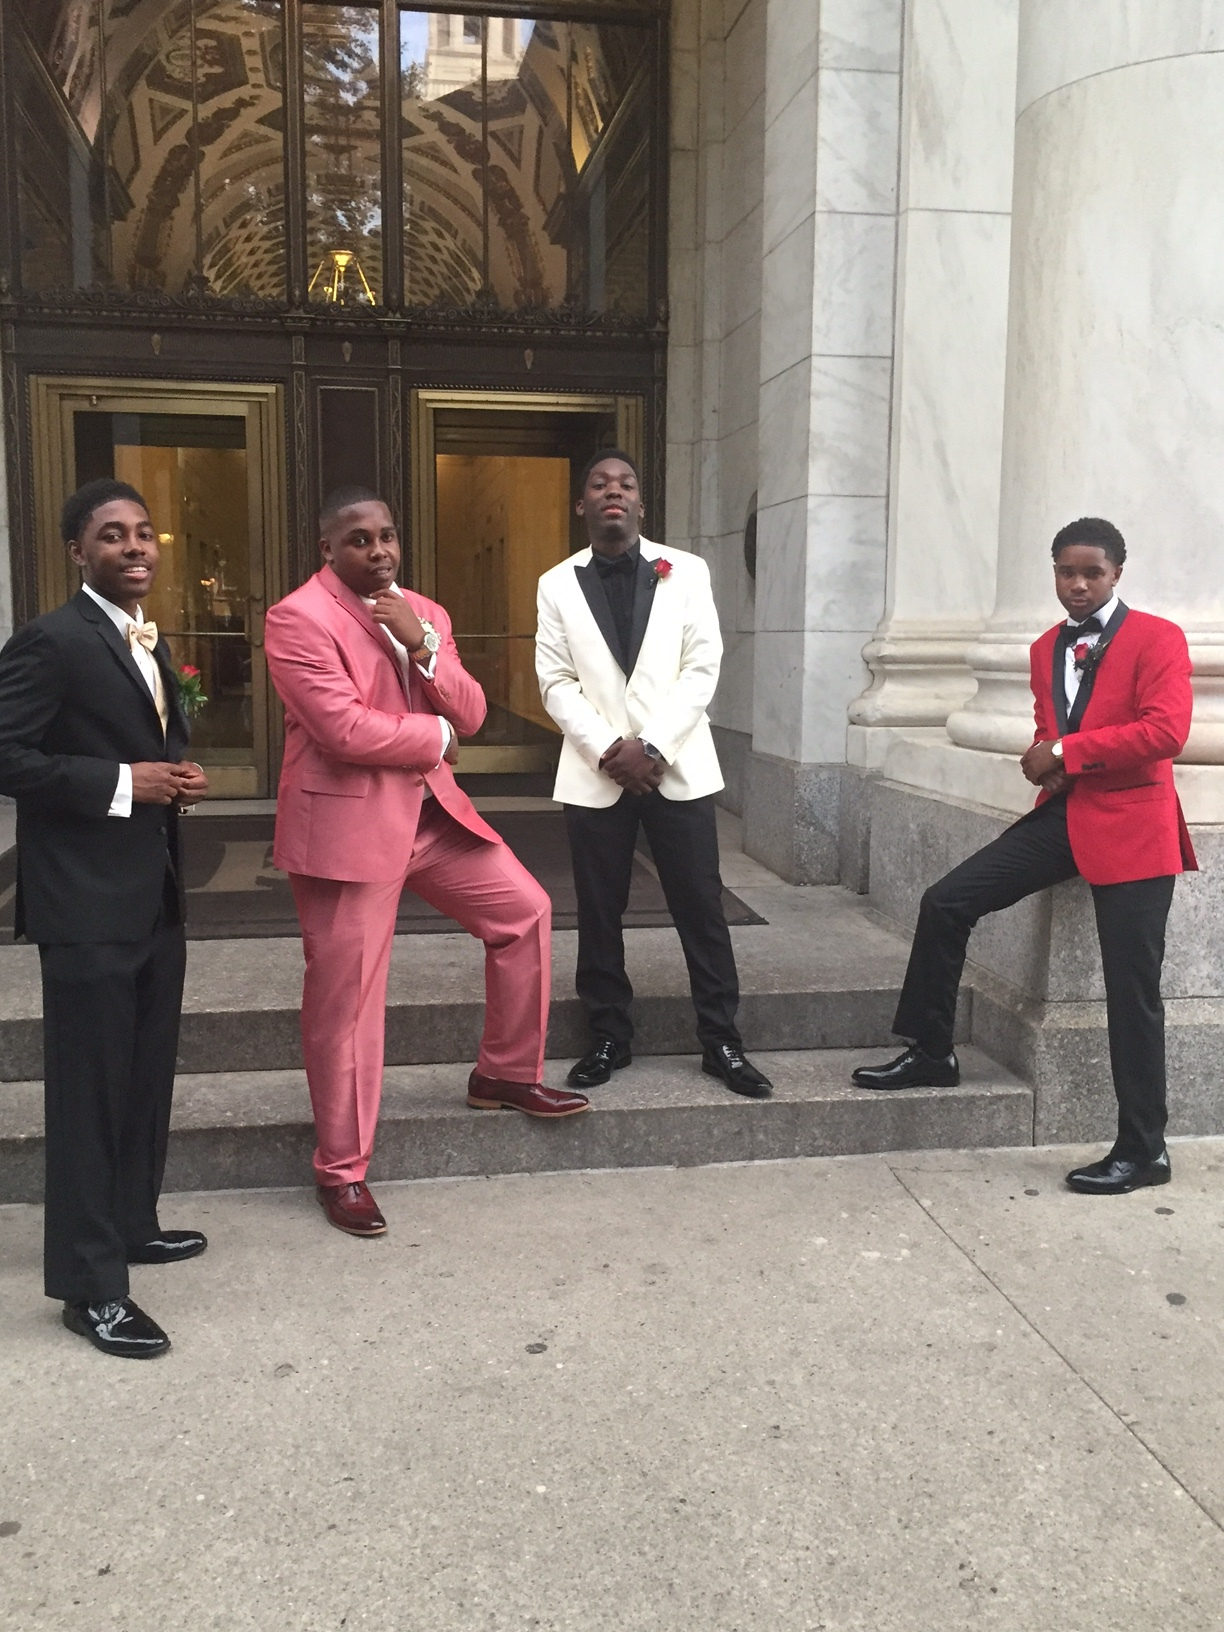 """""""The Tribe""""--Gary Williams, Maurice Scott, Rayshawn Johnson, and Rashaan Brooks, Jr (left to right)--leaned on each other to navigate the challenges and opportunities of growing up and going to school at the academically rigorous J.R. Masterman School in Philadelphia. Consistently ranked as one of the top high schools in the state and even in the country, Masterman prepares its students for success after graduation. The Tribe is no exception: Gary, Maurice, and Rashaan are all headed to the University of Pittsburgh, and Rayshawn is going to Yale.  The Tribe's time at Masterman wasn't strictly spent studying. The young men all play prominent roles in the schools African American Culture Committee, a club dedicated to fostering and growing the school's black student population. Rashaan, Gary, Maurice, and Rayshawn were four of just seven black young men in their grade of 108 students."""